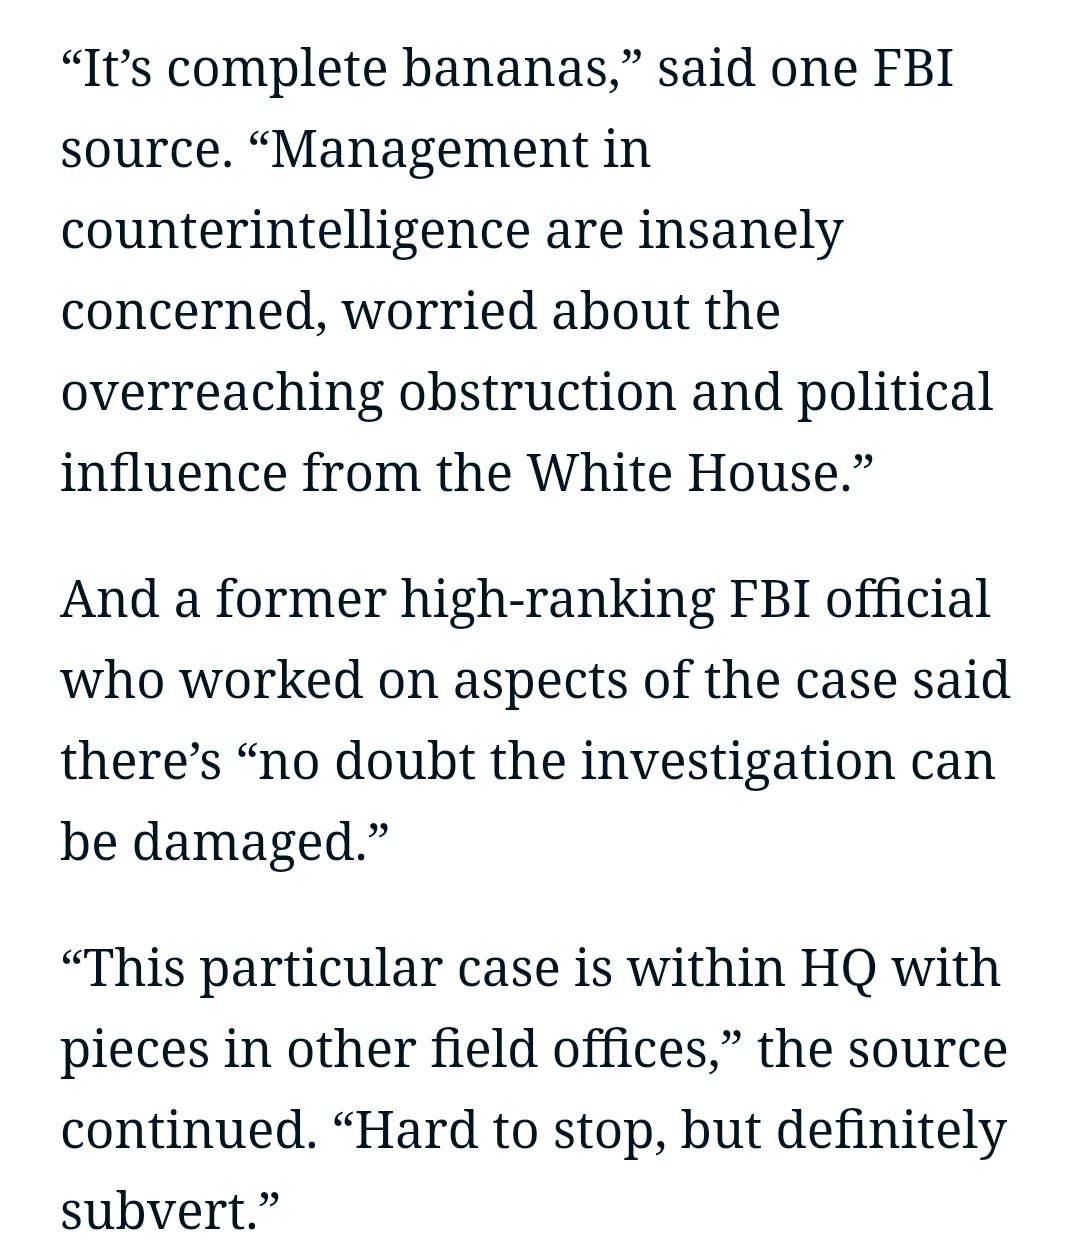 FBI agents are sure the White House is about to kneecap the Russia probe. https://t.co/oY8WaSfW84 https://t.co/fs84A4stsf